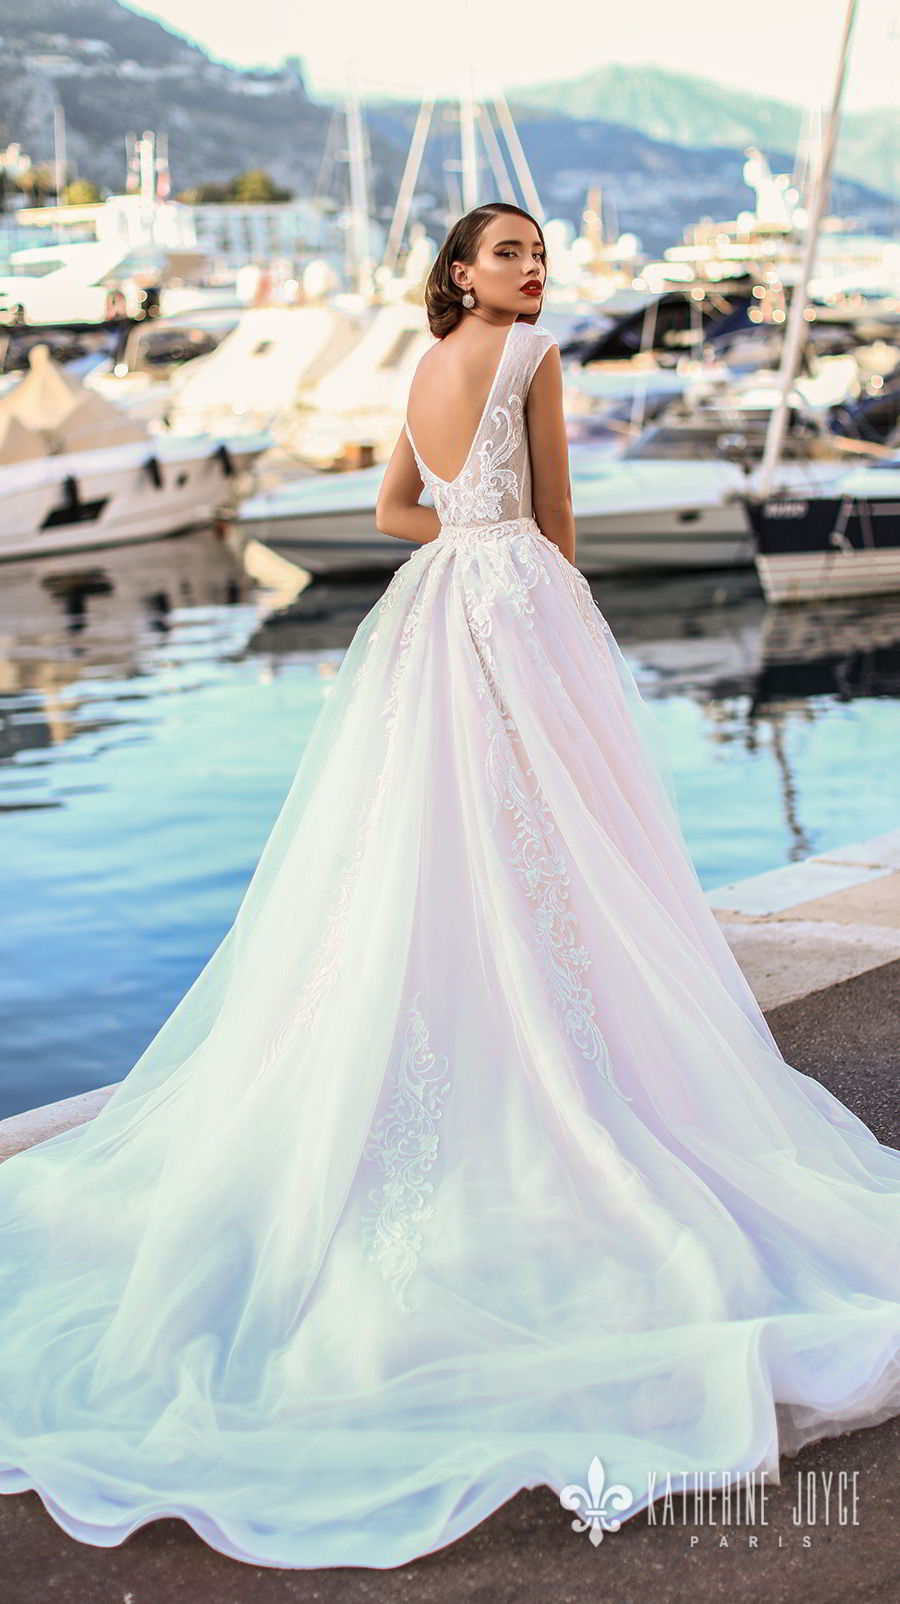 katherine joyce 2018 bridal sleeveless jewel neck heavily embellished bodice romantic ball gown a  line wedding dress scoop back chapel train (mari) bv